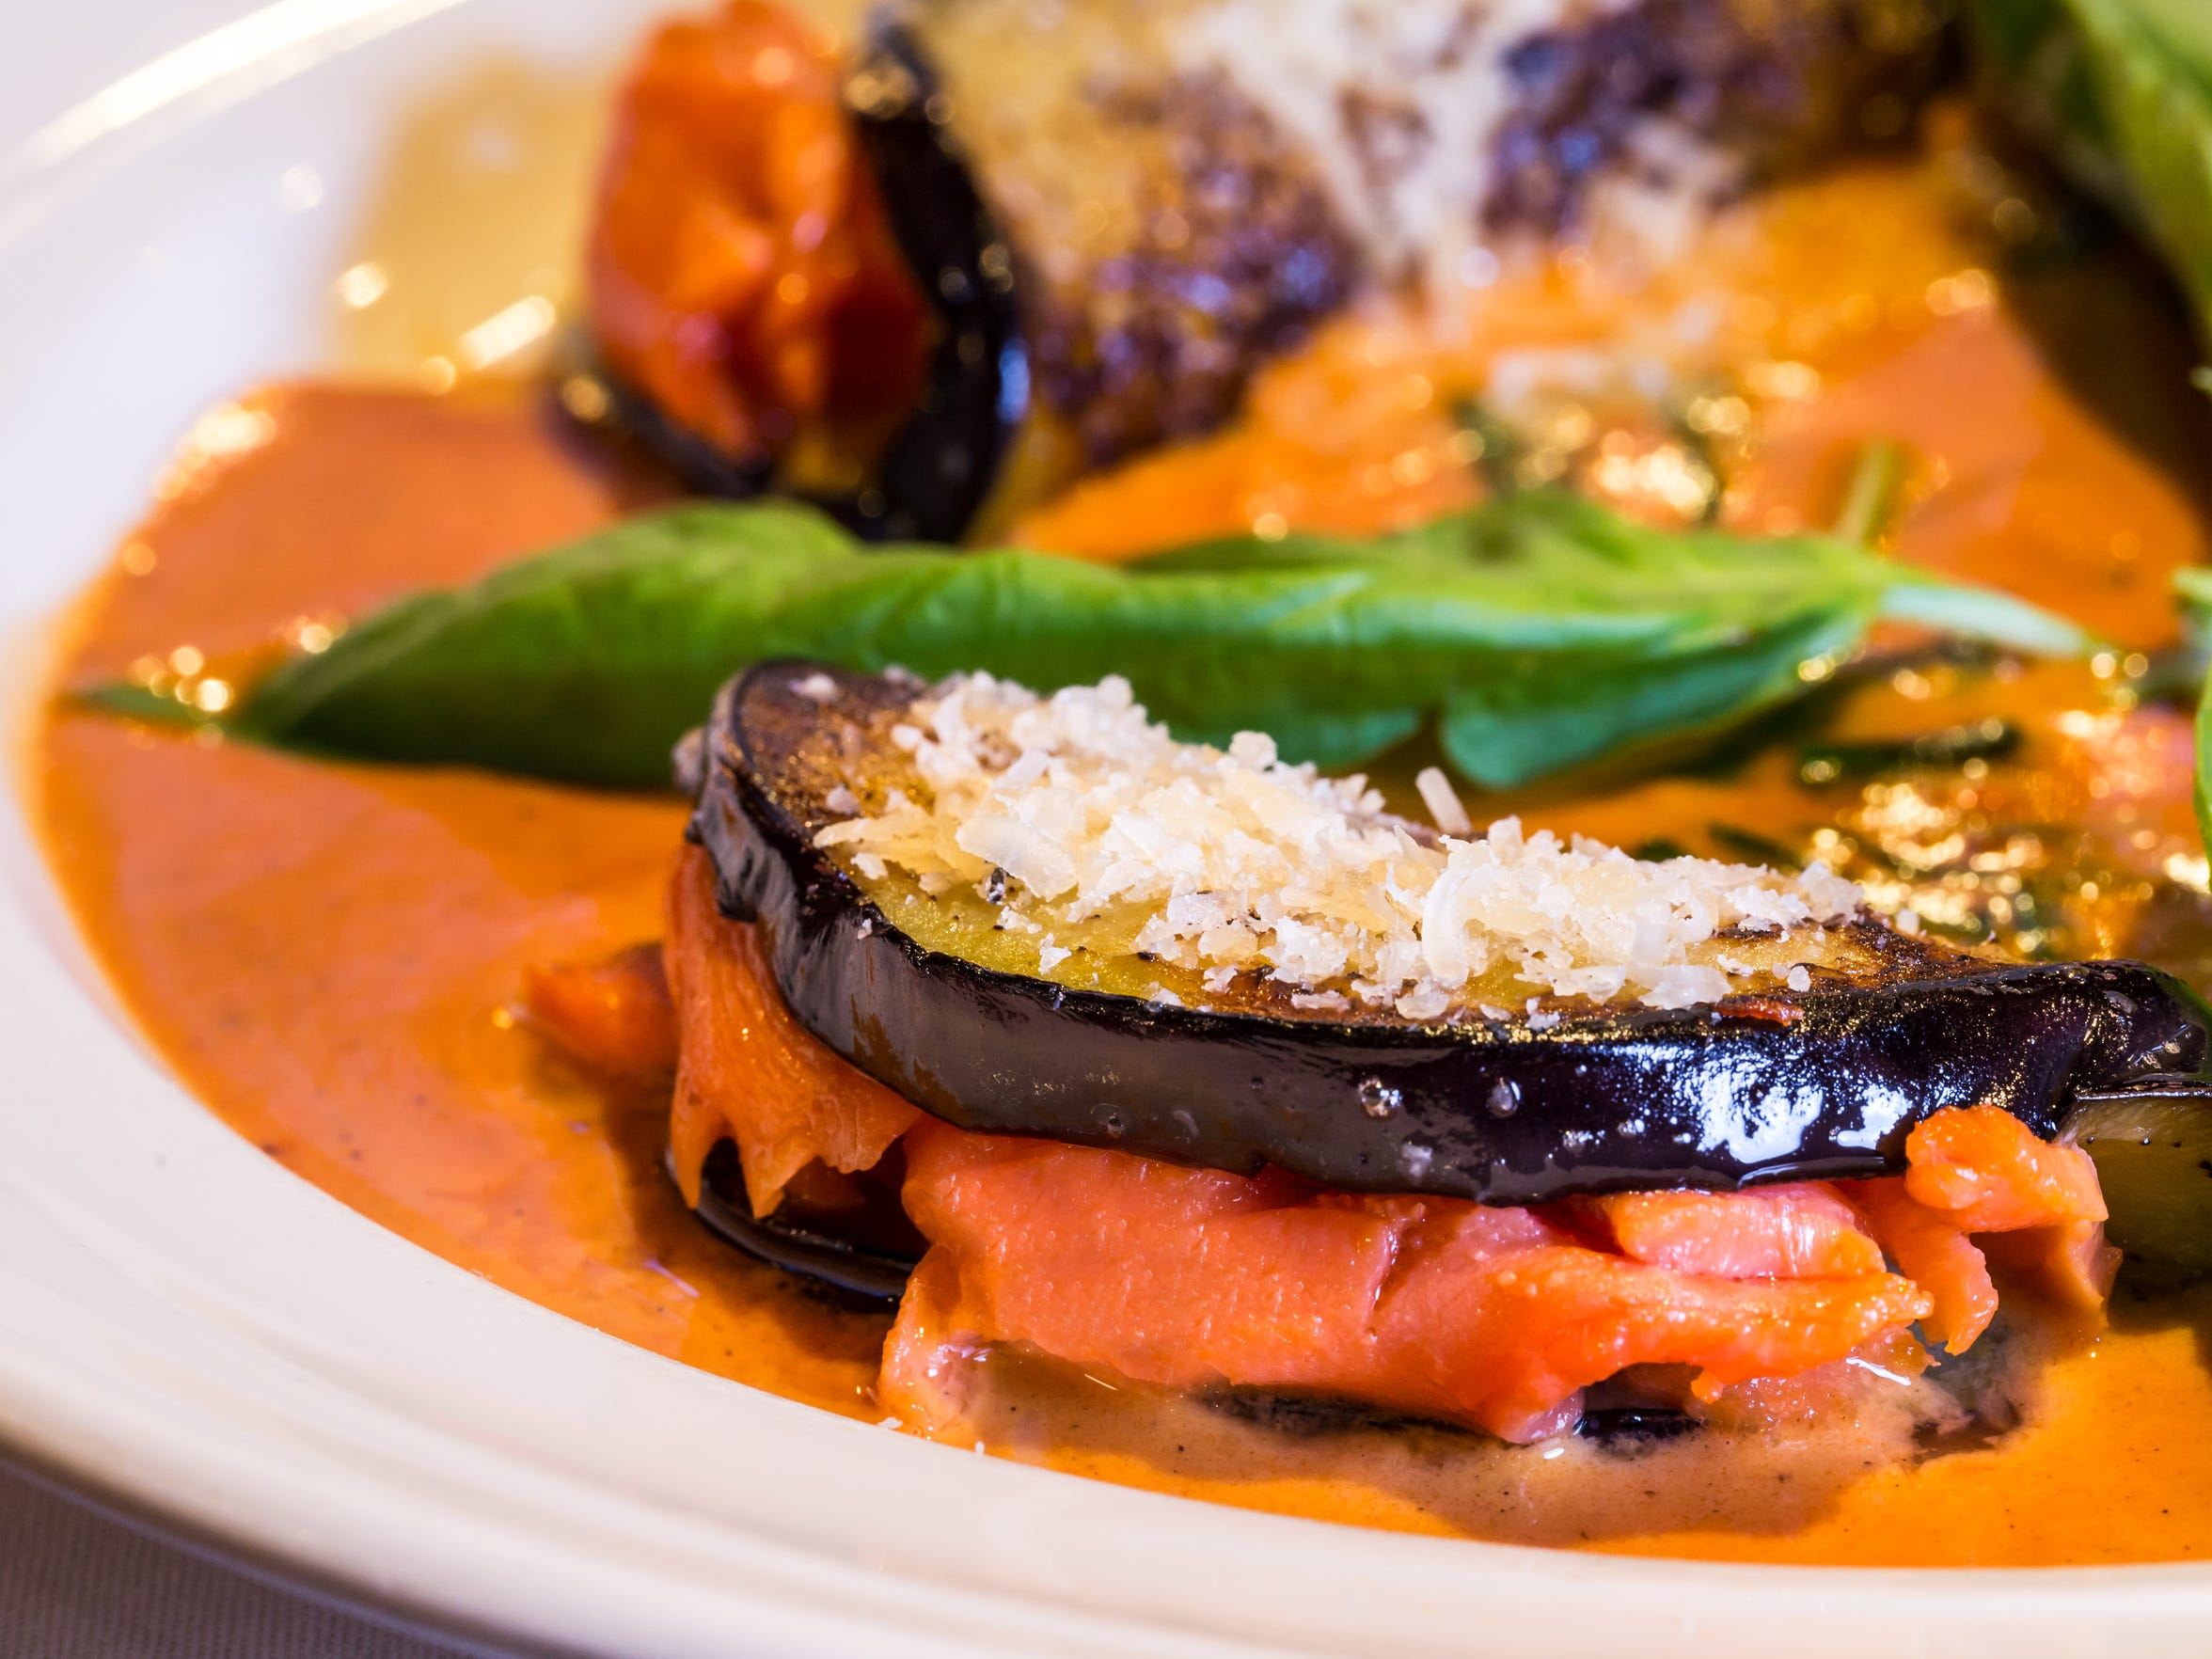 At Cafe Fiore in South Lake Tahoe, look for eggplant